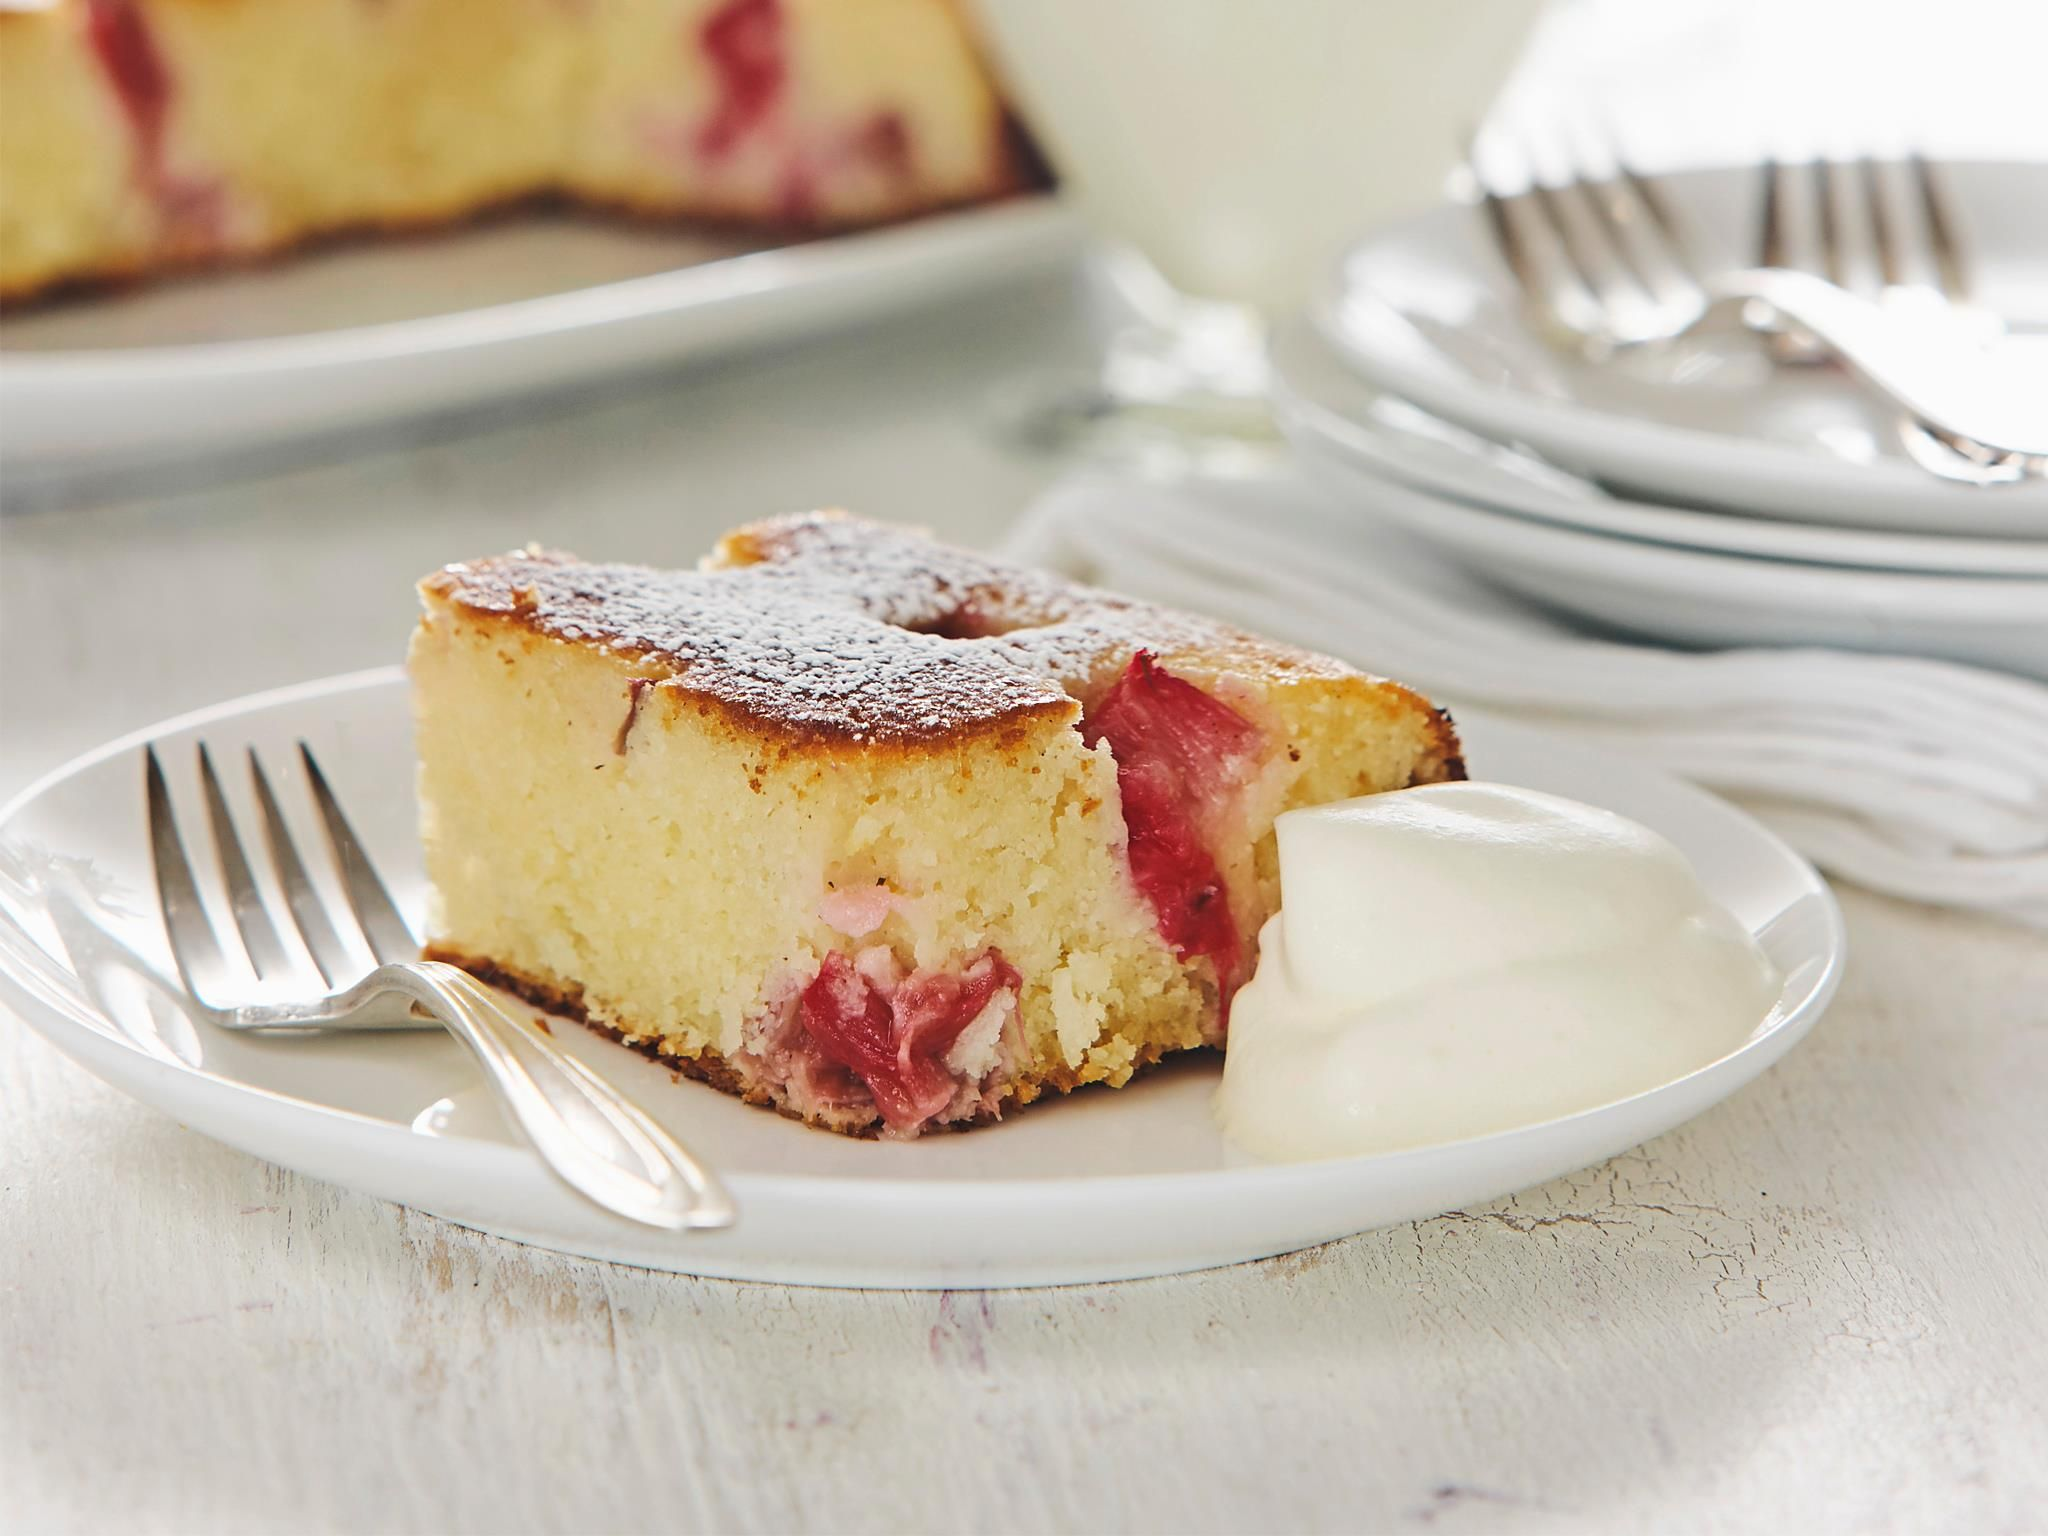 Enjoy this moist rhubarb and coconut semolina cake recipe